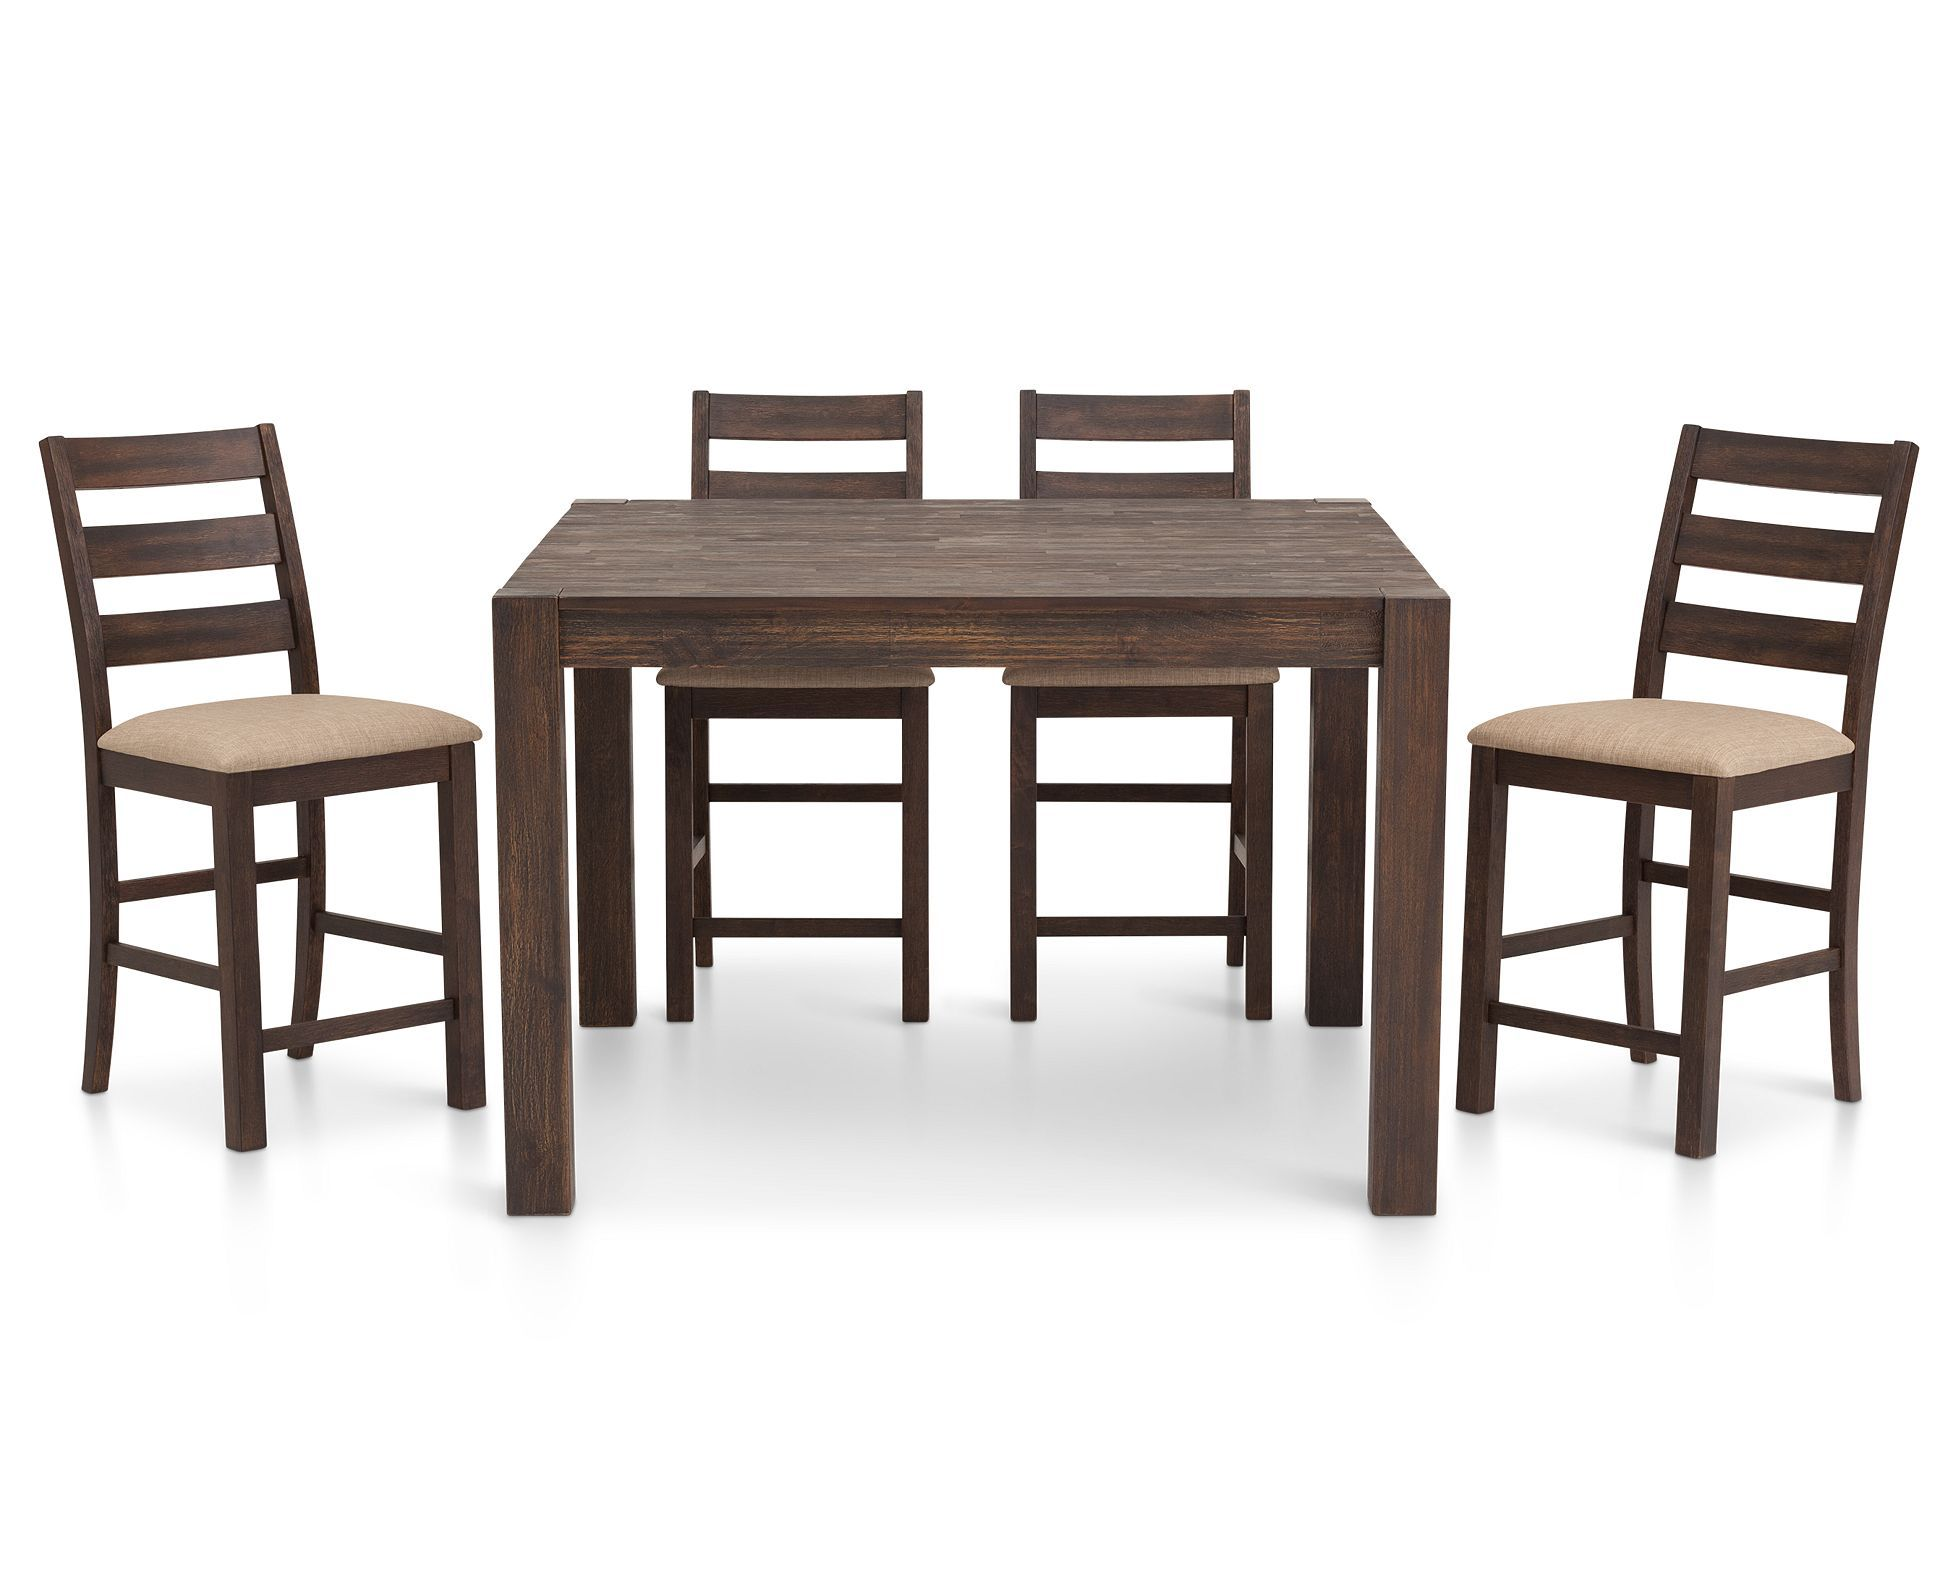 Streamlined Shaker Styling Shines In The Alpine 5 Piece Counter Height Dining Set Furniturerow Living Room Decor Modern Rowe Furniture Counter Height Table